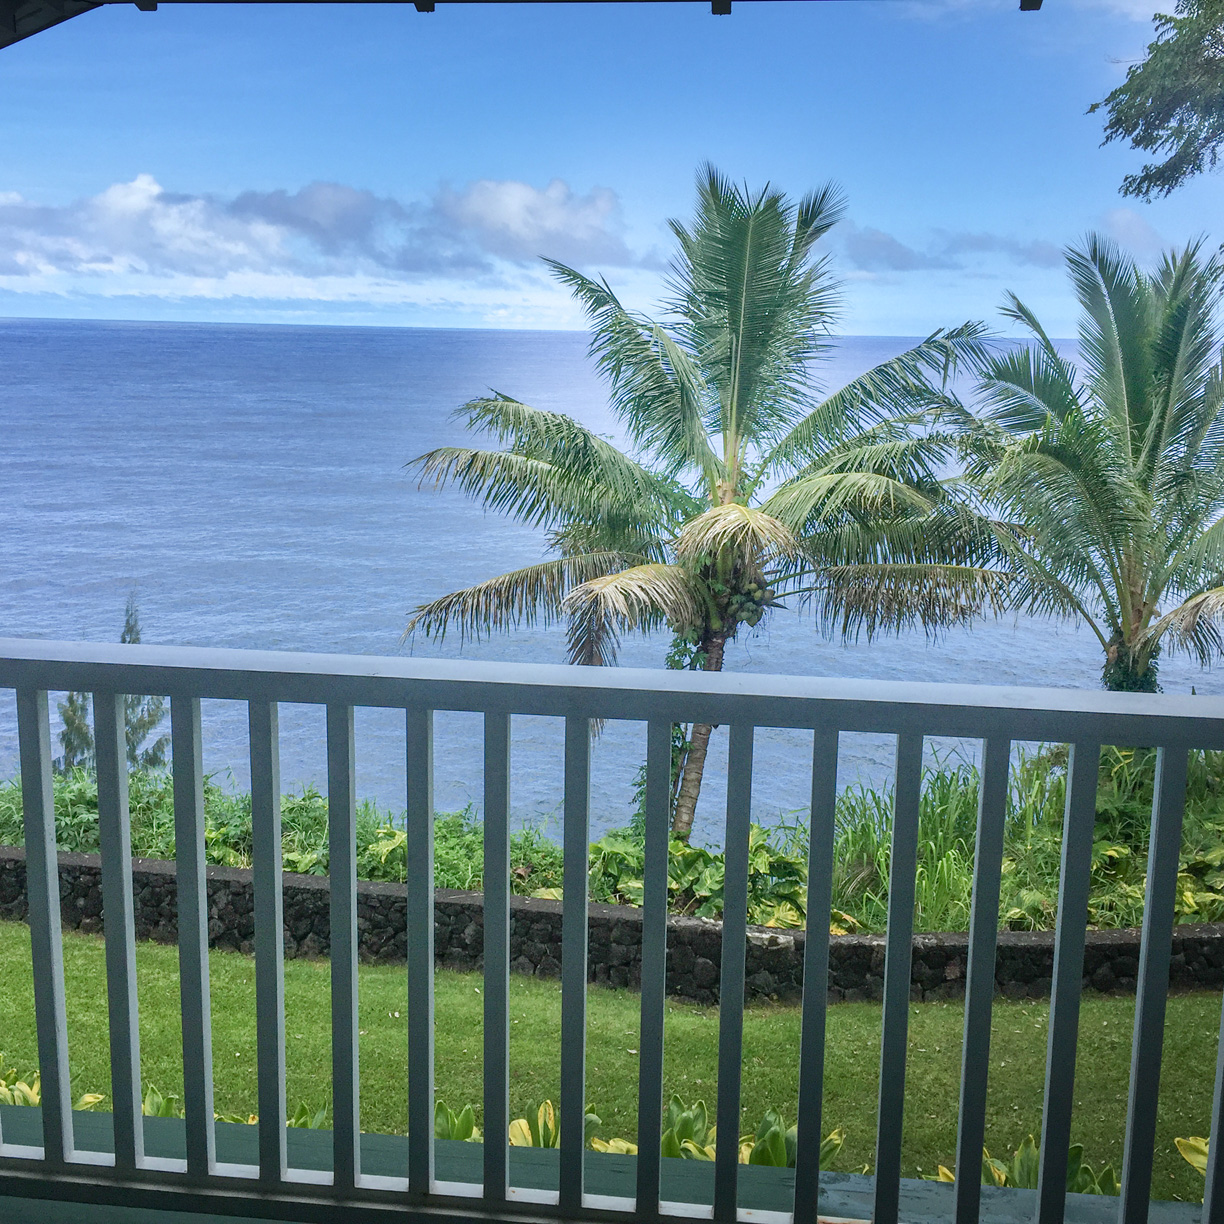 Idyllic Romantic setting with ocean view great for watching the sunrise with your loved one.